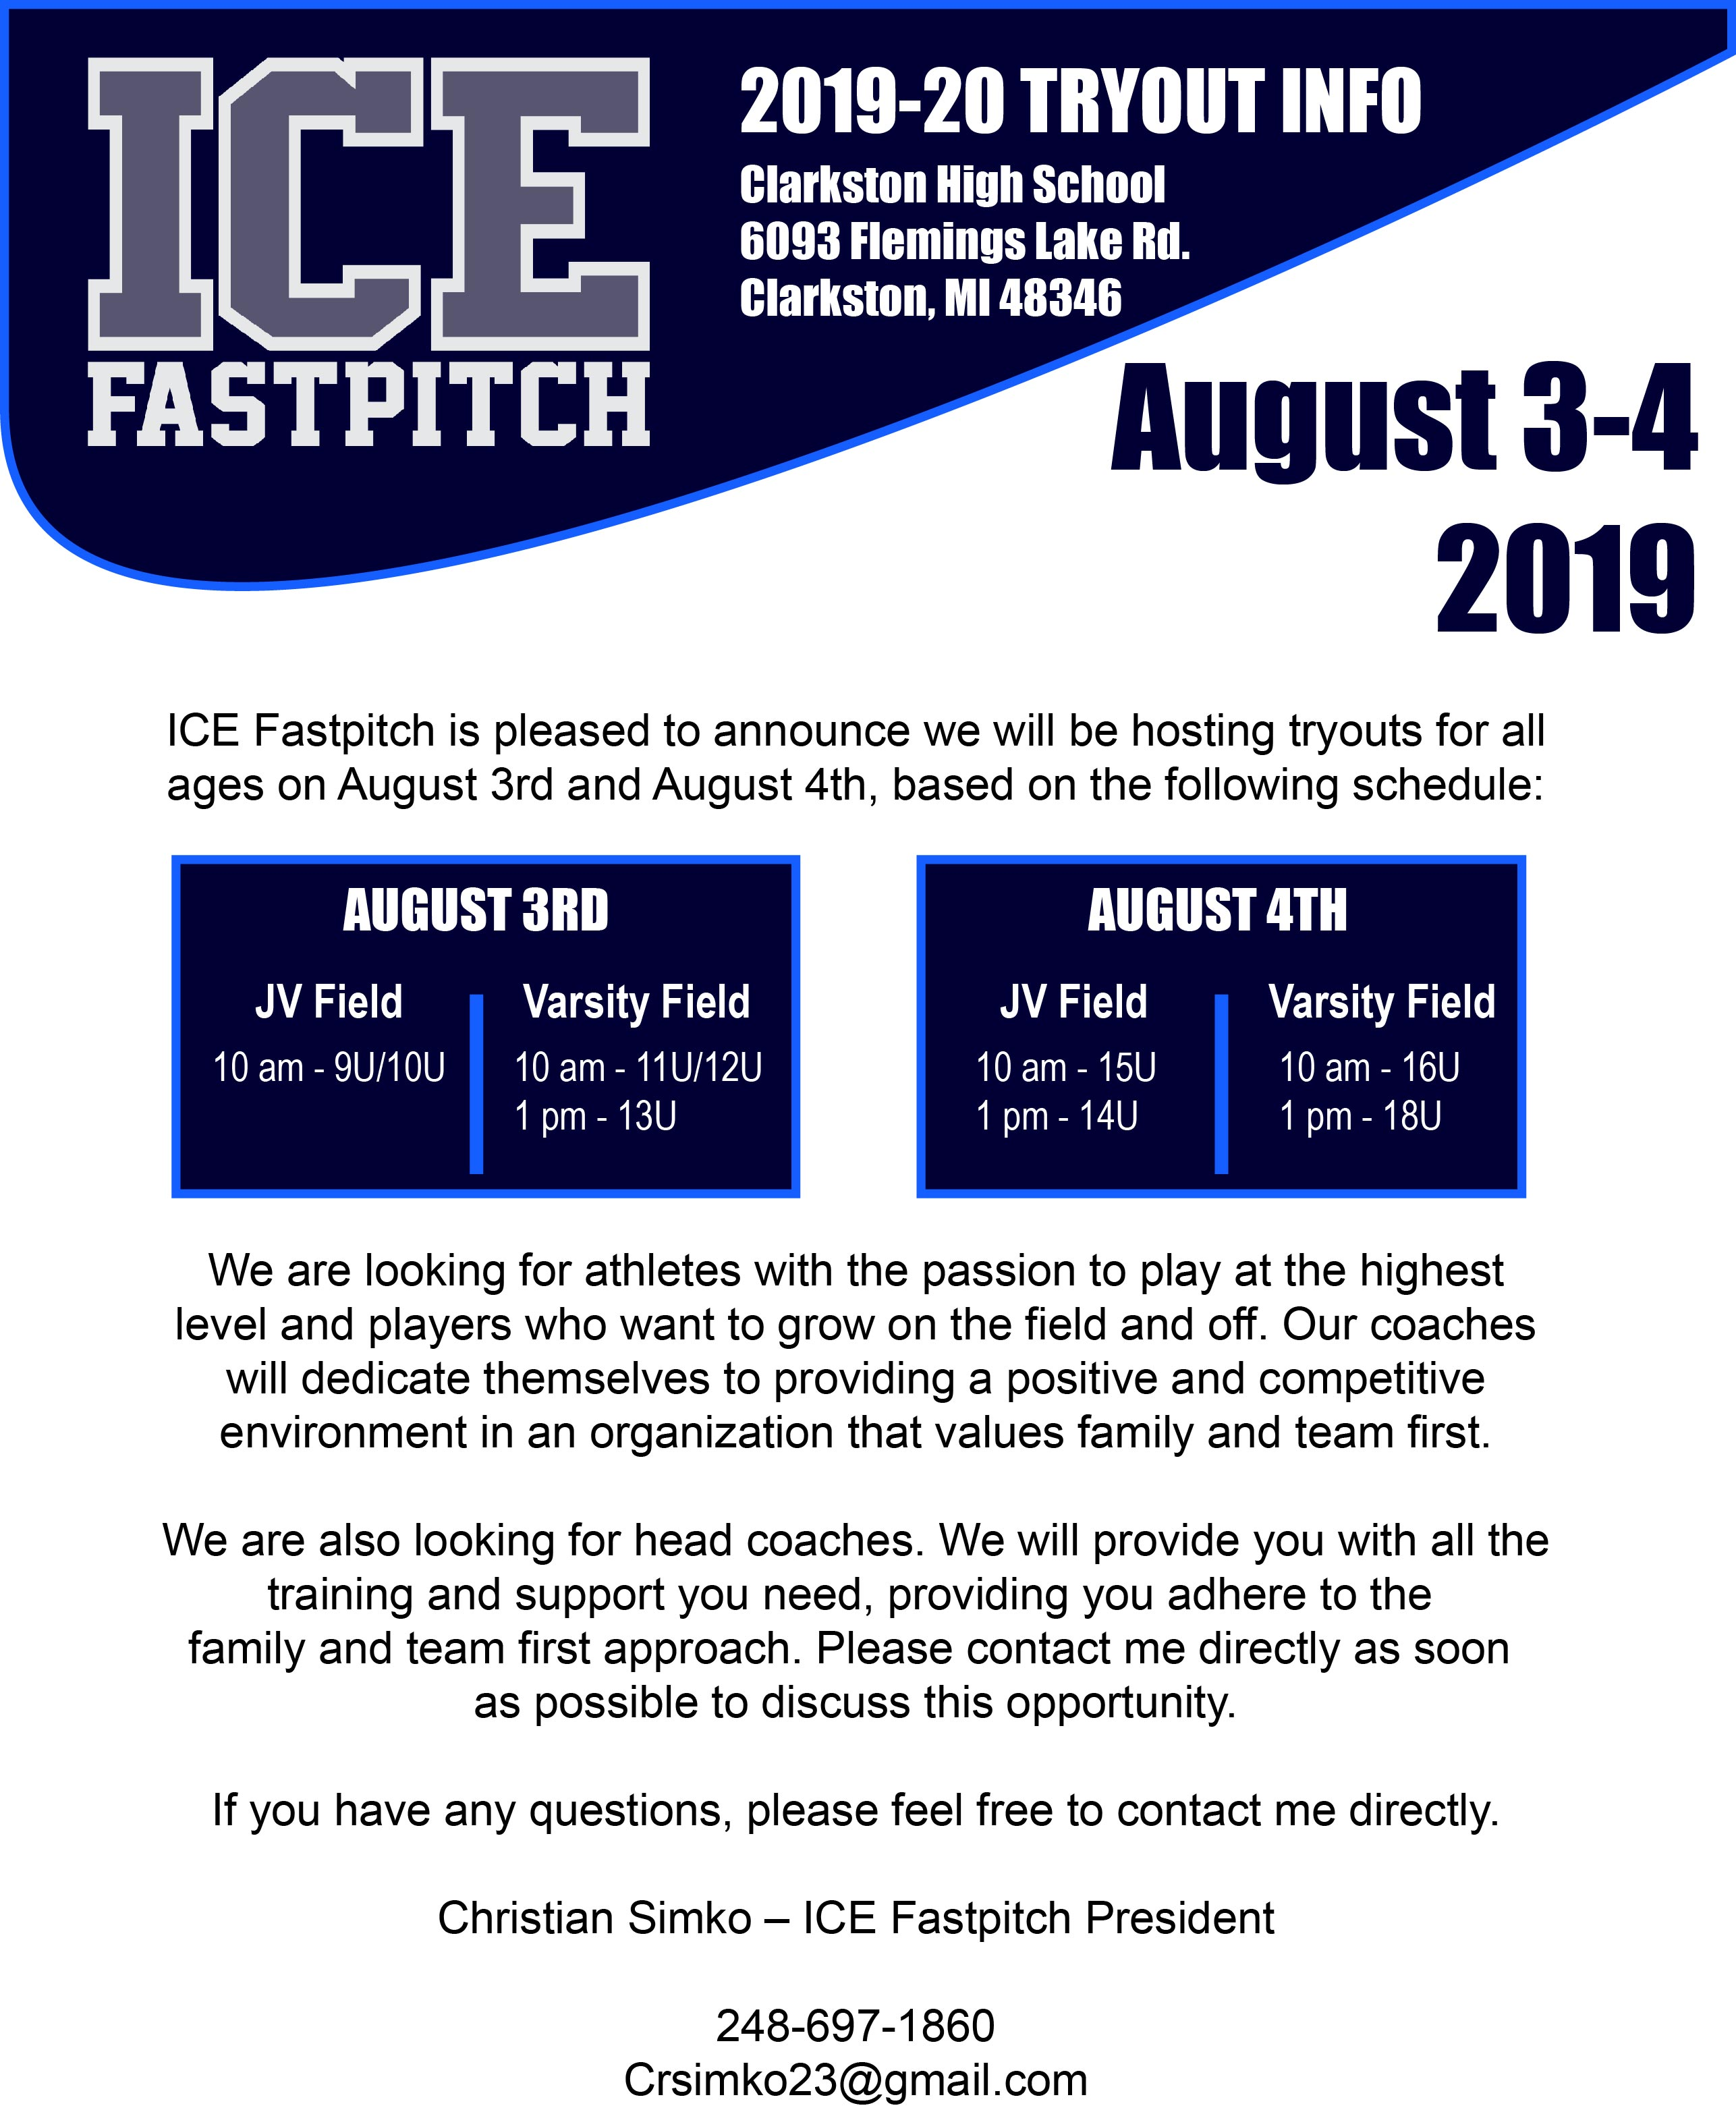 ICE Fastpitch - Tryouts